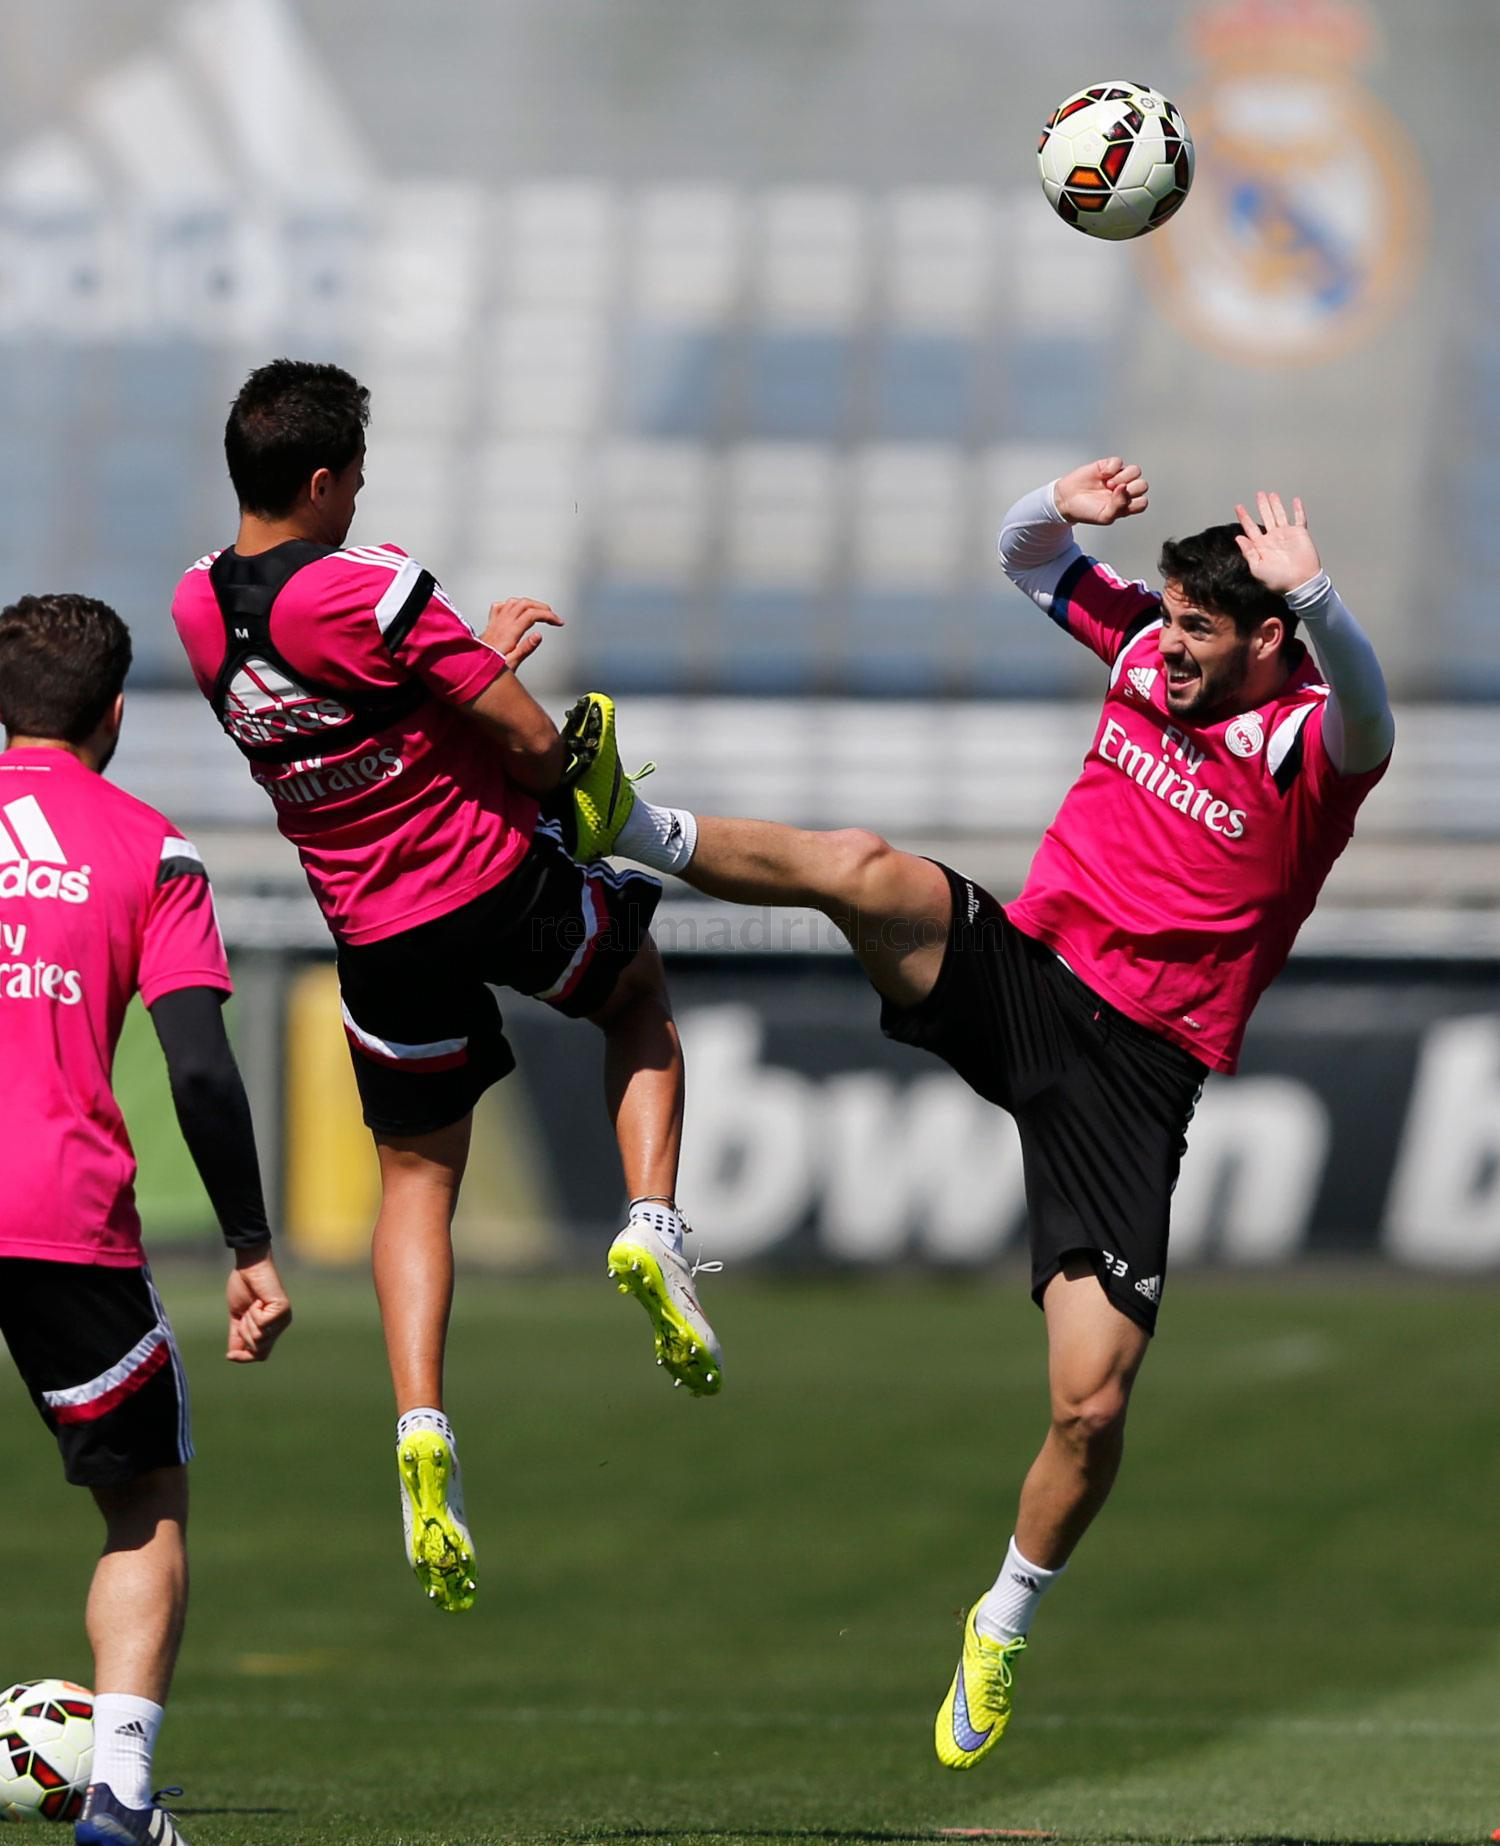 Real Madrid - Entrenamiento del Real Madrid - 08-05-2015